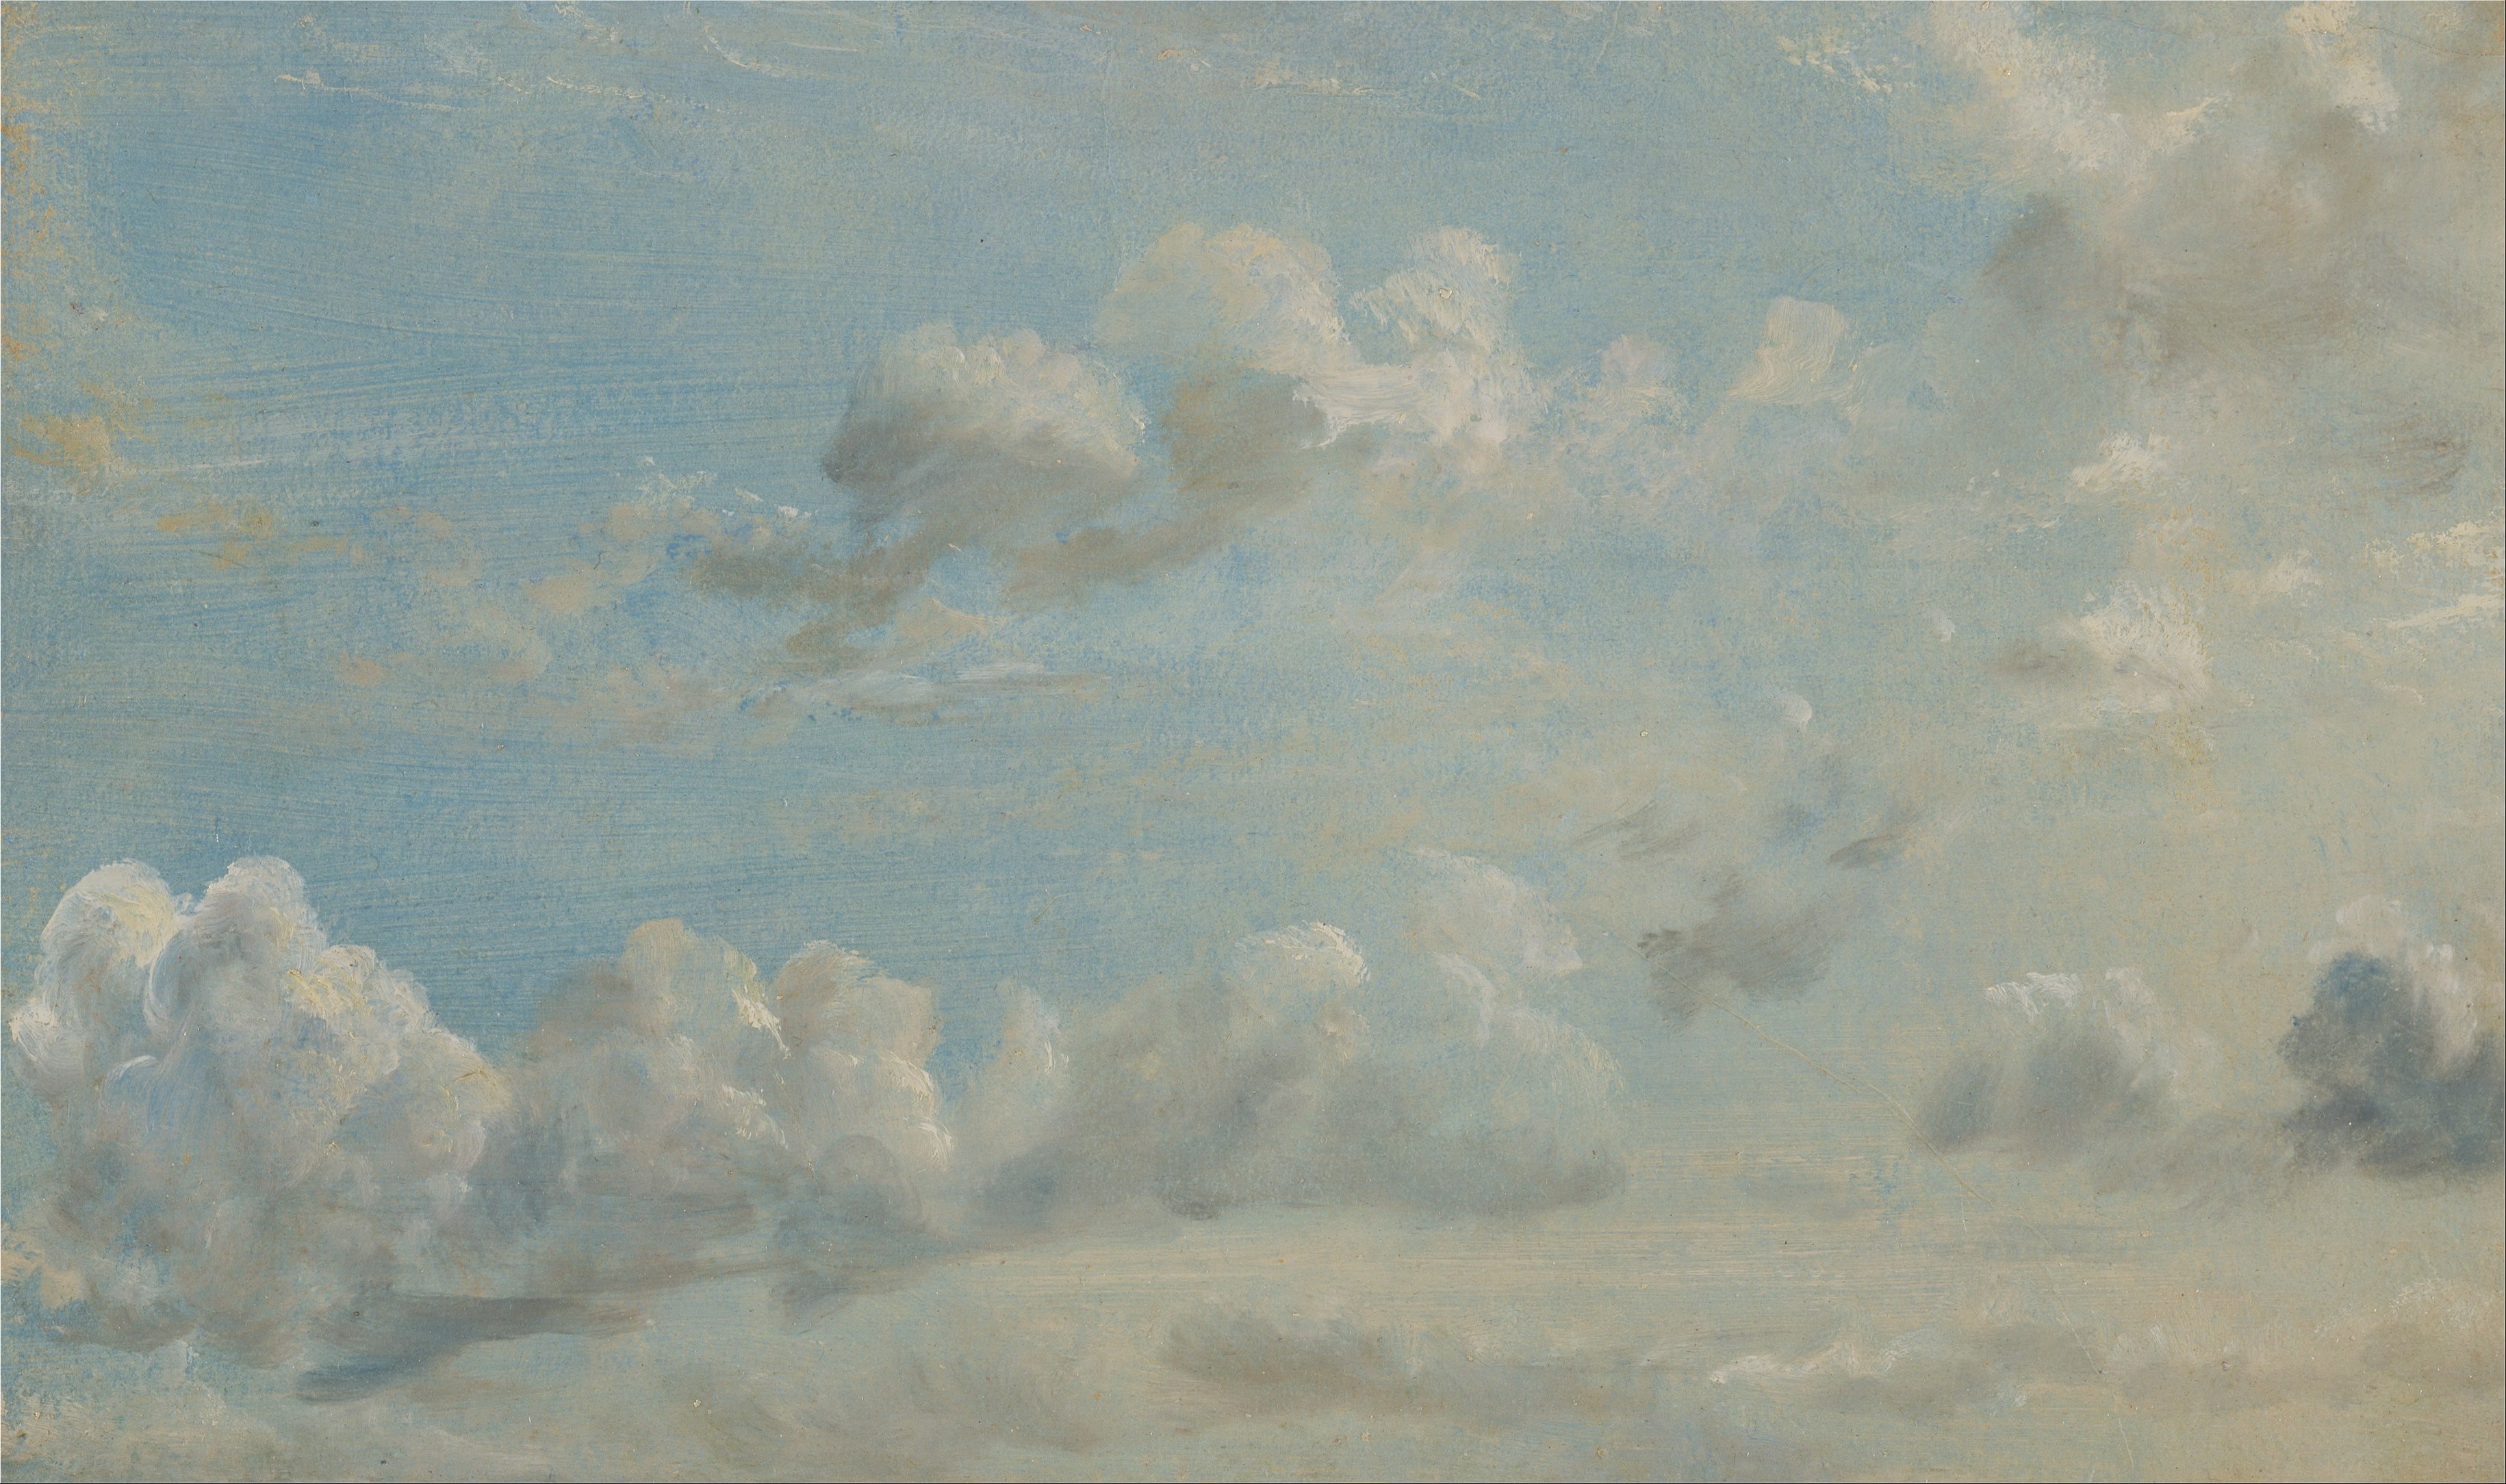 Oil Painting Cloud And Wave Break By F Saileis